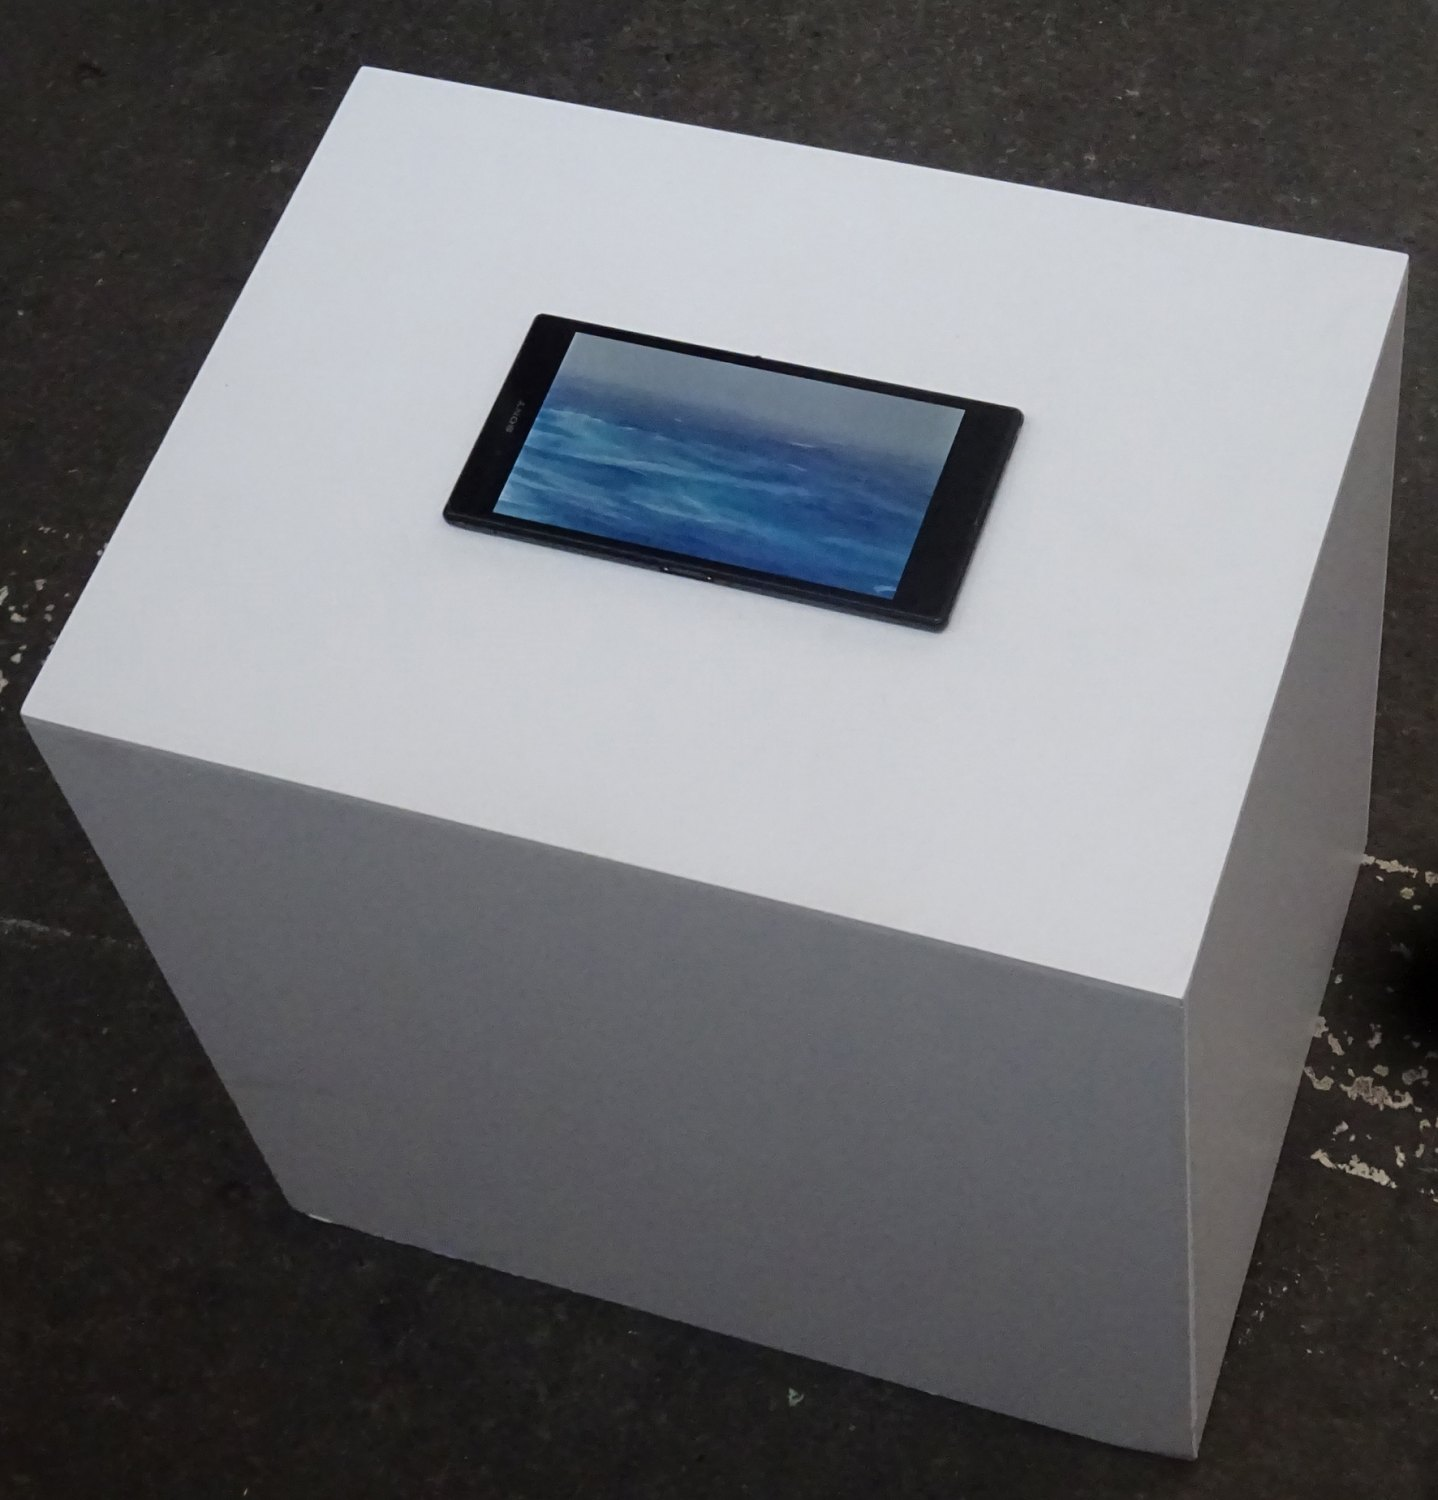 Sean Snyder Tableau Bateau,2016 random video loop with audio on hacked Sony XPERIA Z Ultra, displayed on PVC structure, RAL 9003, 40 cm high x 40 cm wide x 30 cm deep